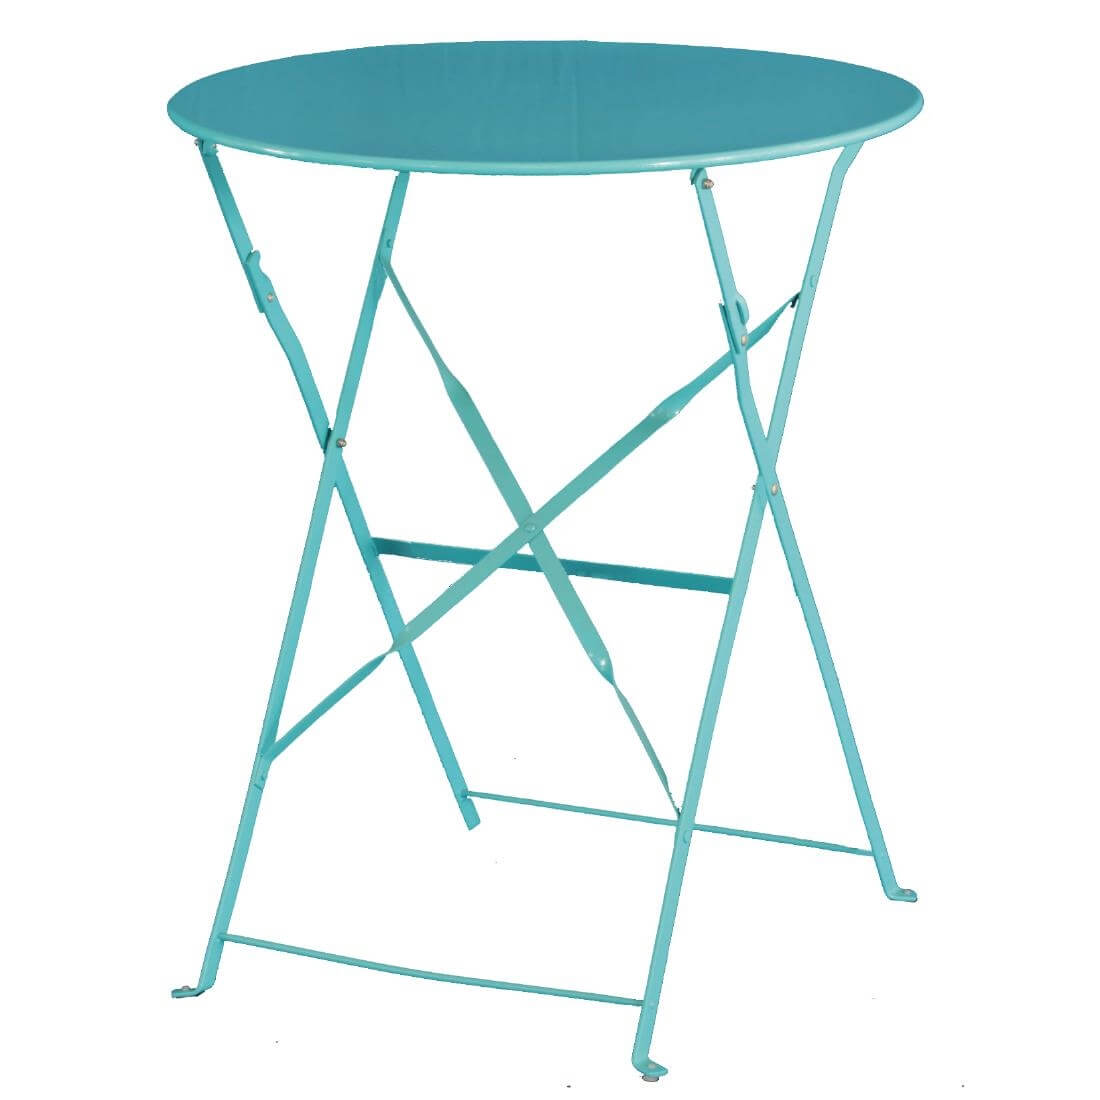 Steel Folding Table Round - Blue